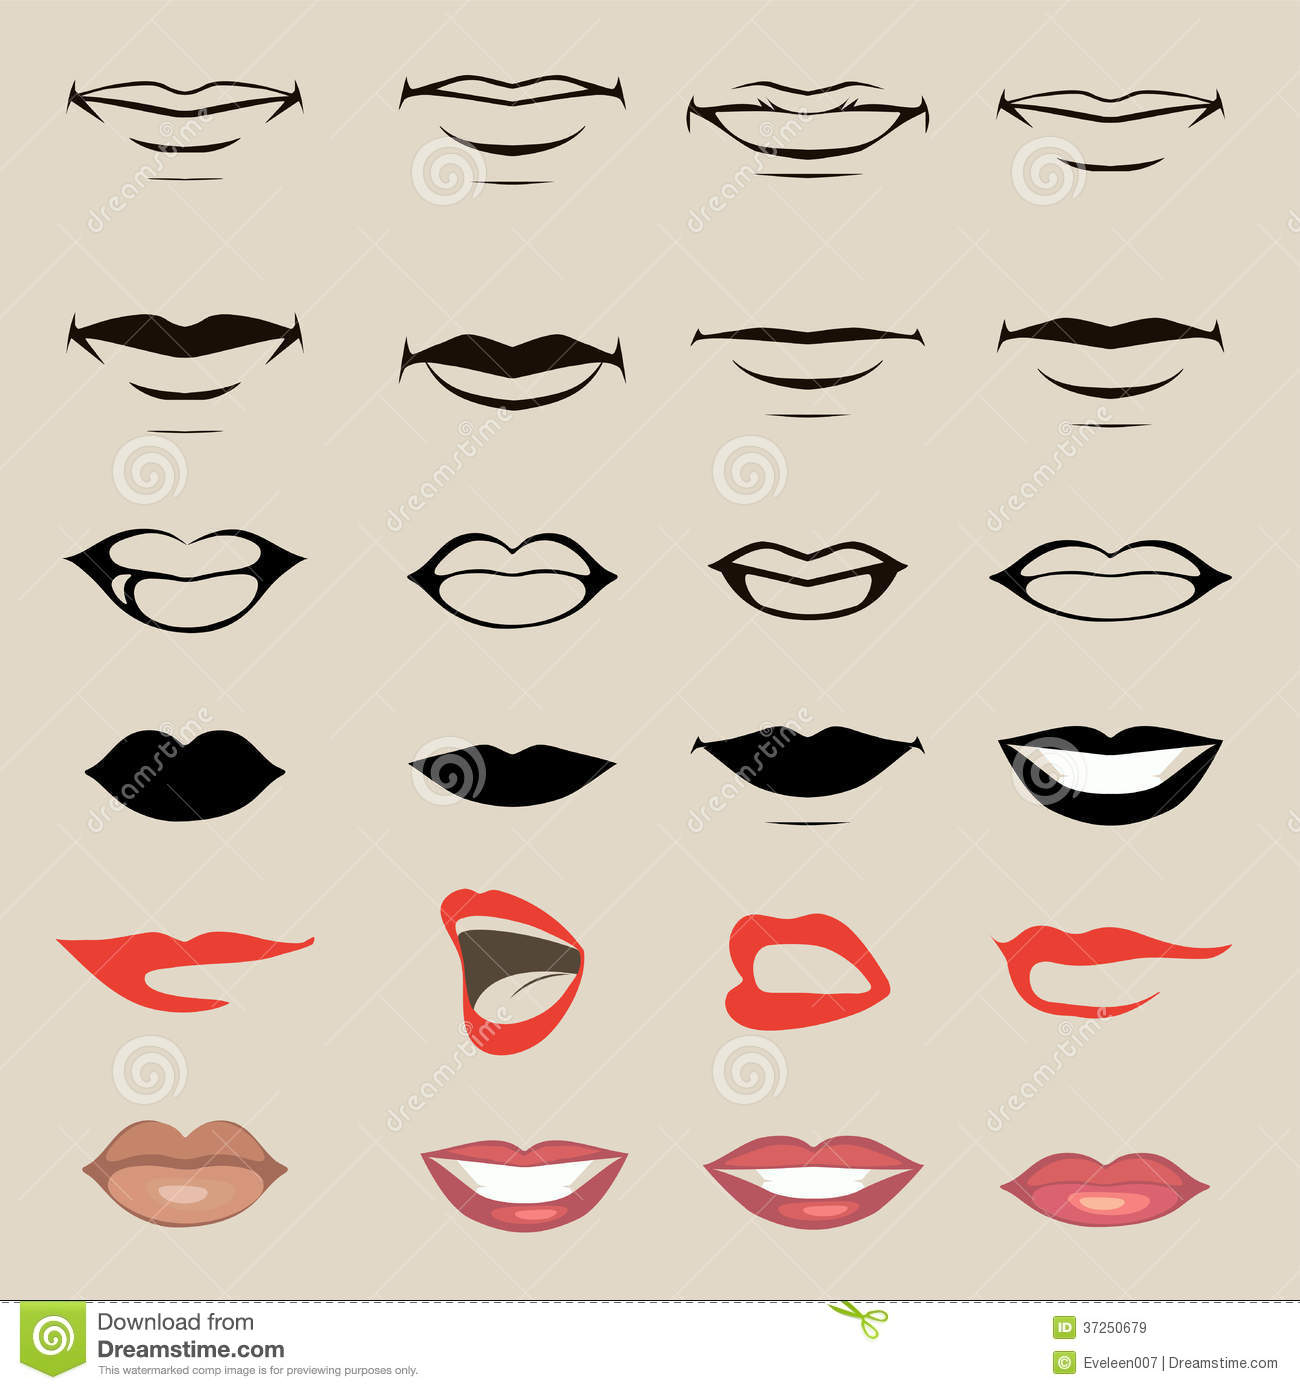 10 Lips Silhouette Vector Images